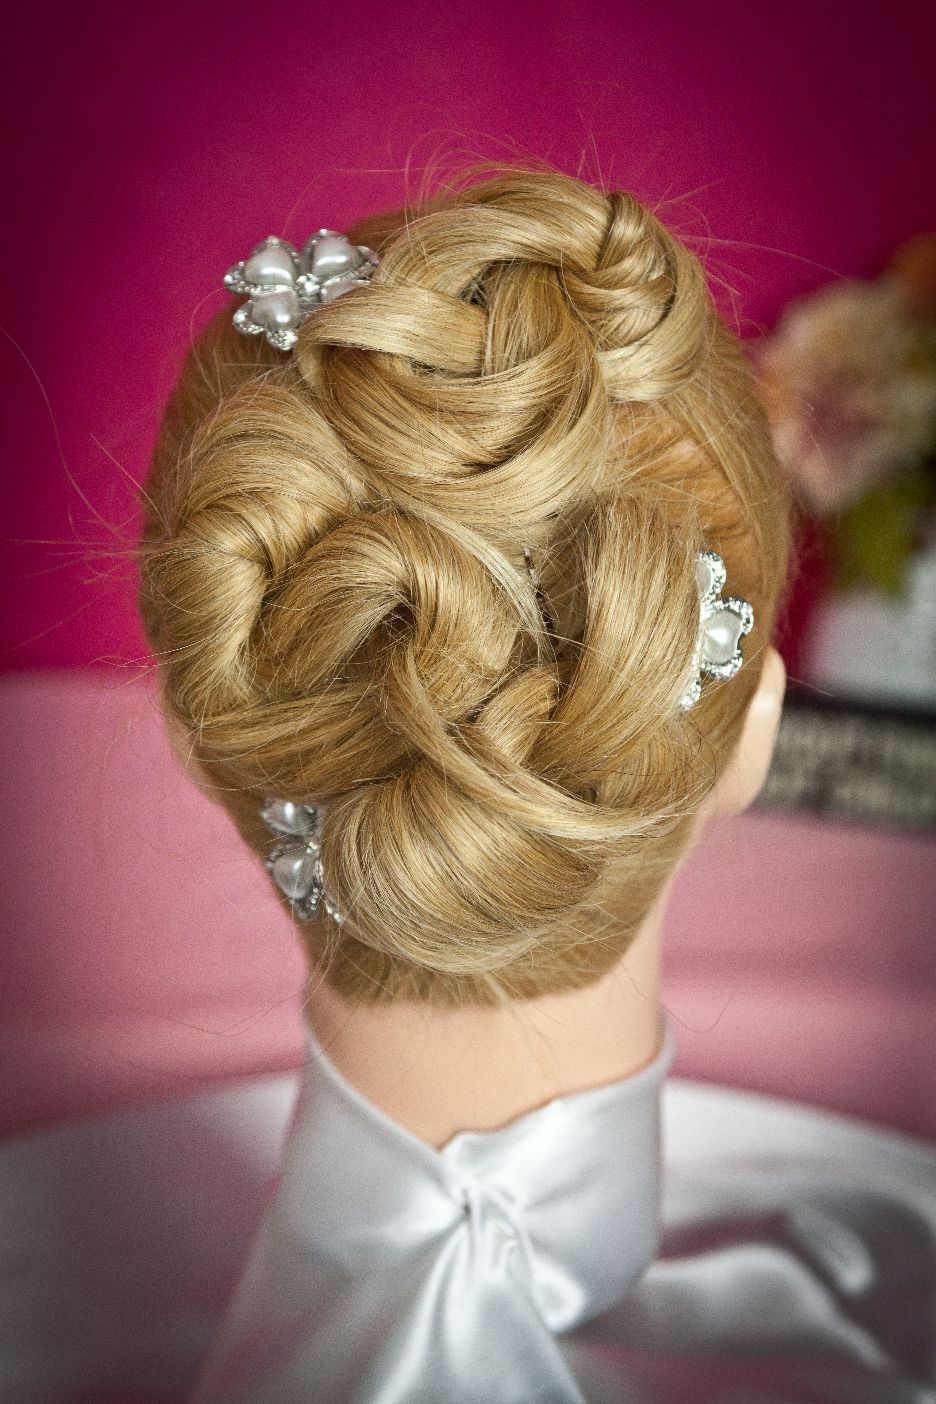 Learn How to Create this Easy Updo https://www.youtube.com ...